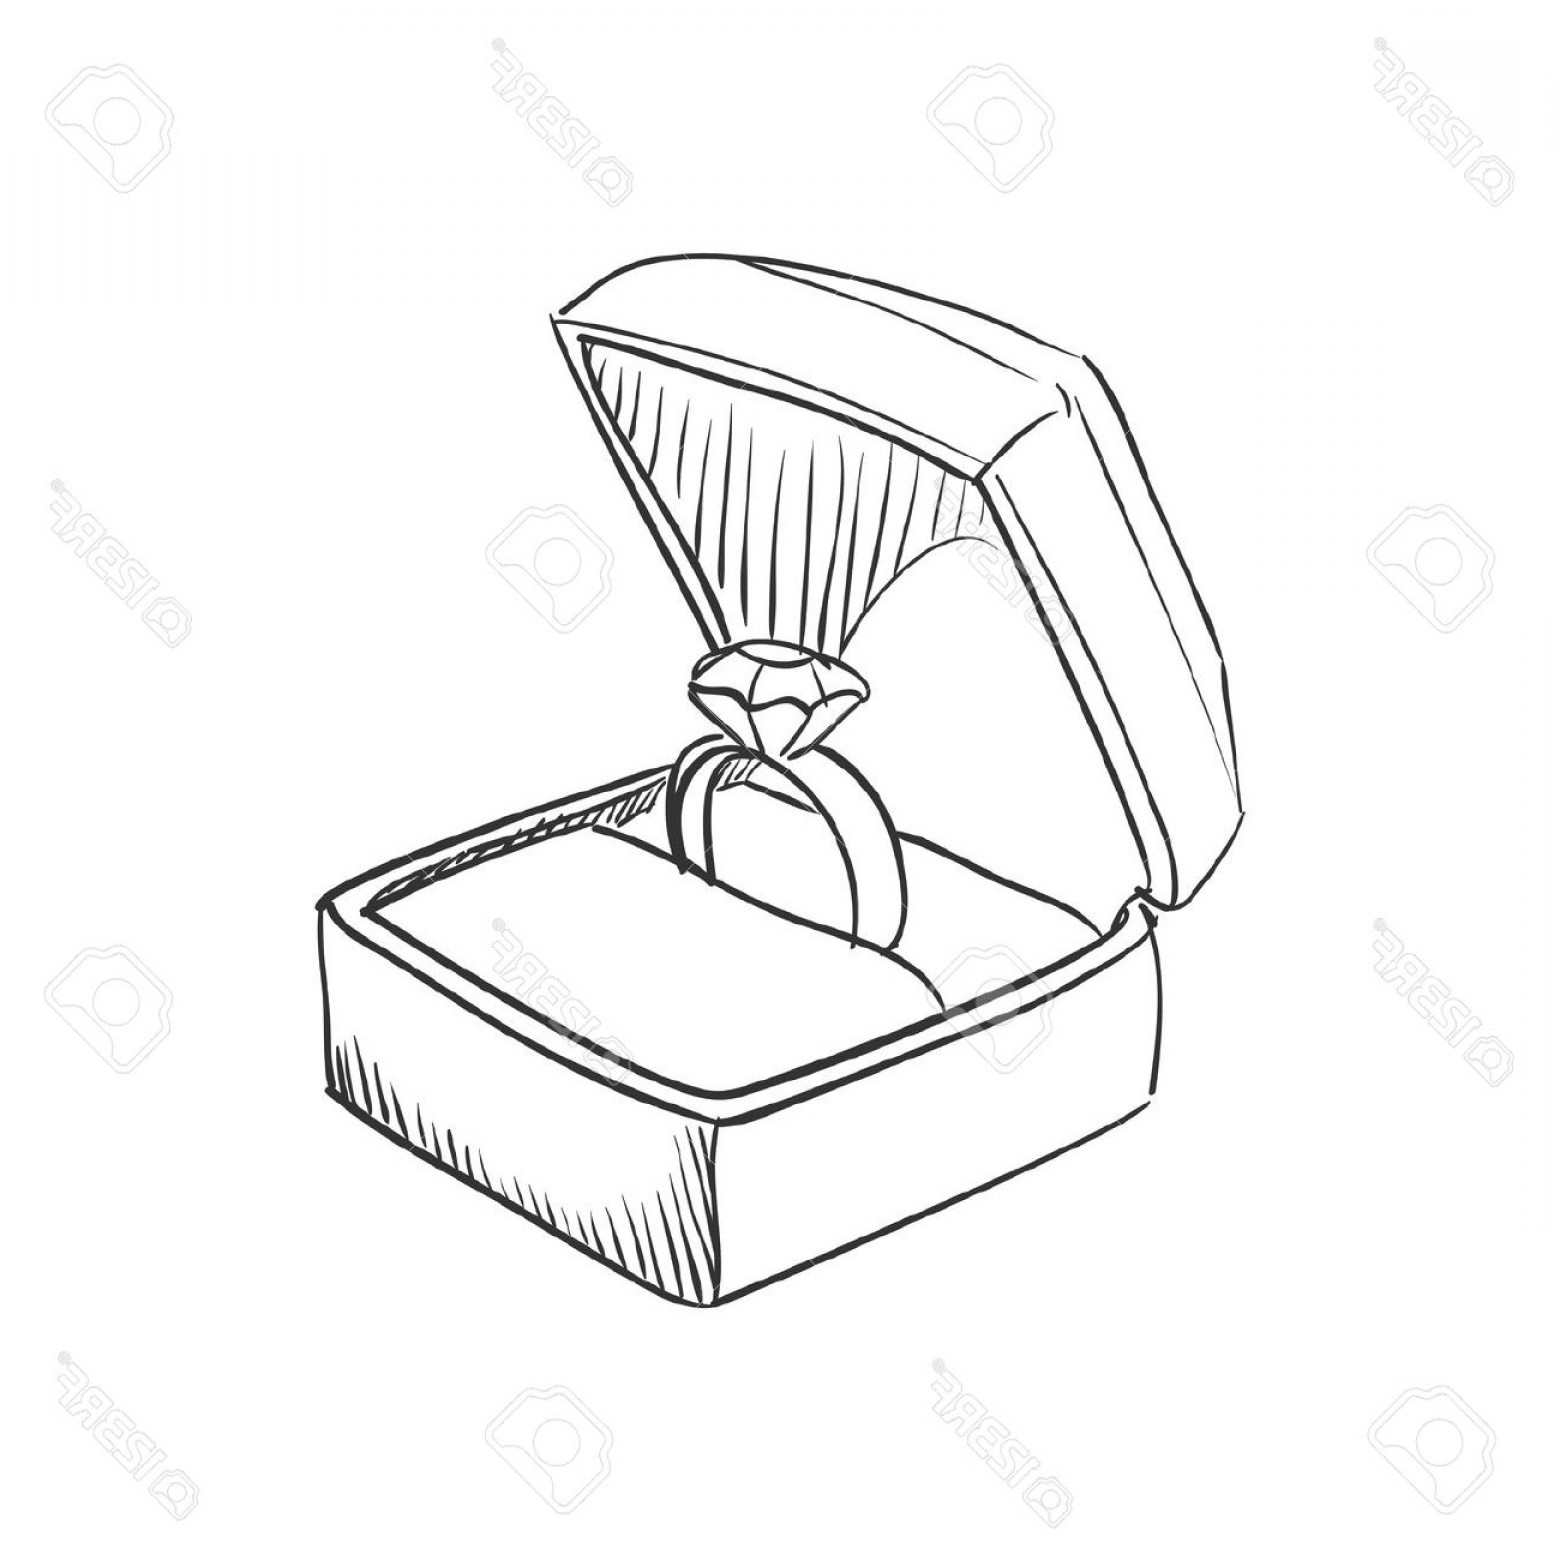 1560x1560 Wedding Ring Drawing Wedding Rings Ring Drawing Easy How To Draw